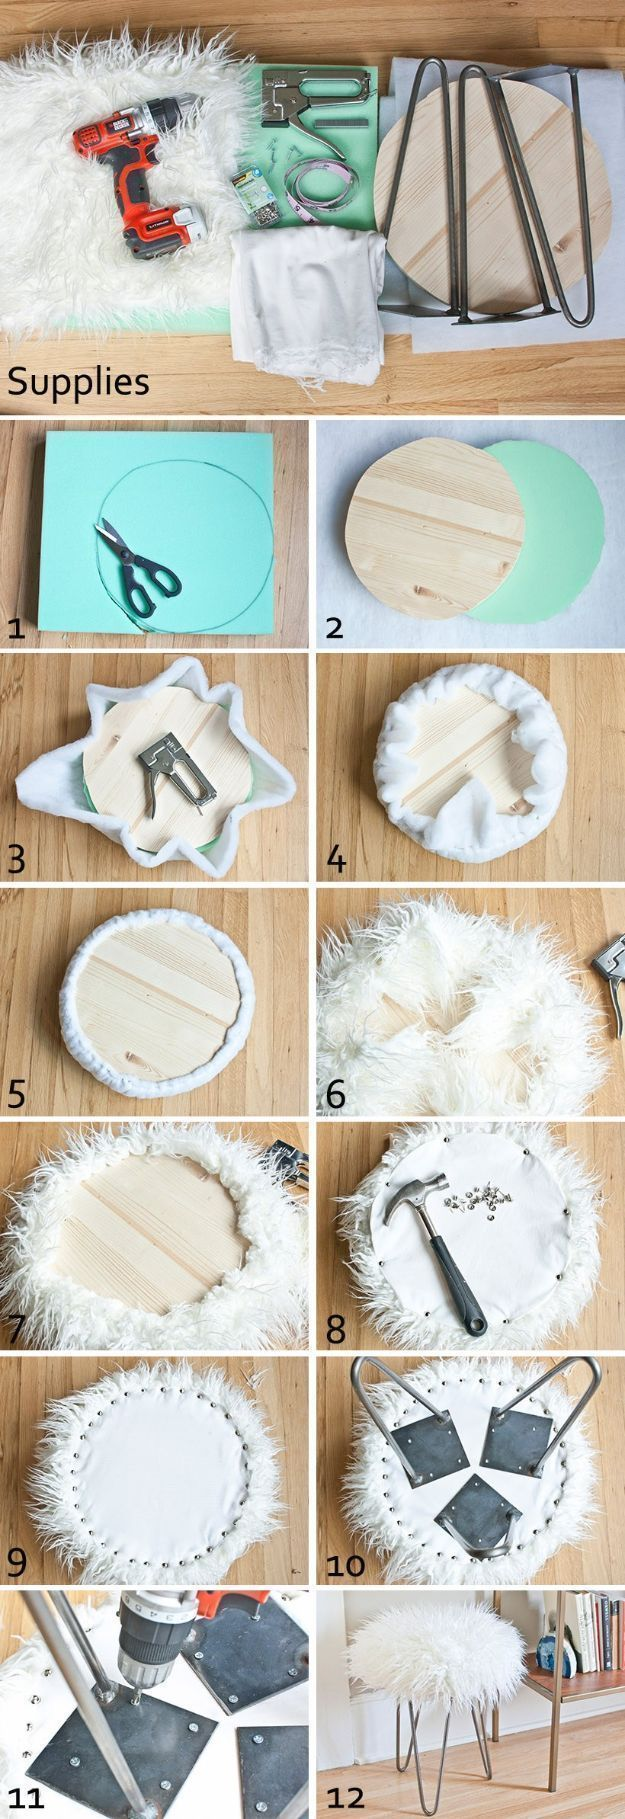 Diy teen room decor ideas for girls faux fur stool with hairpin diy teen room decor ideas for girls faux fur stool with hairpin legs cool solutioingenieria Image collections